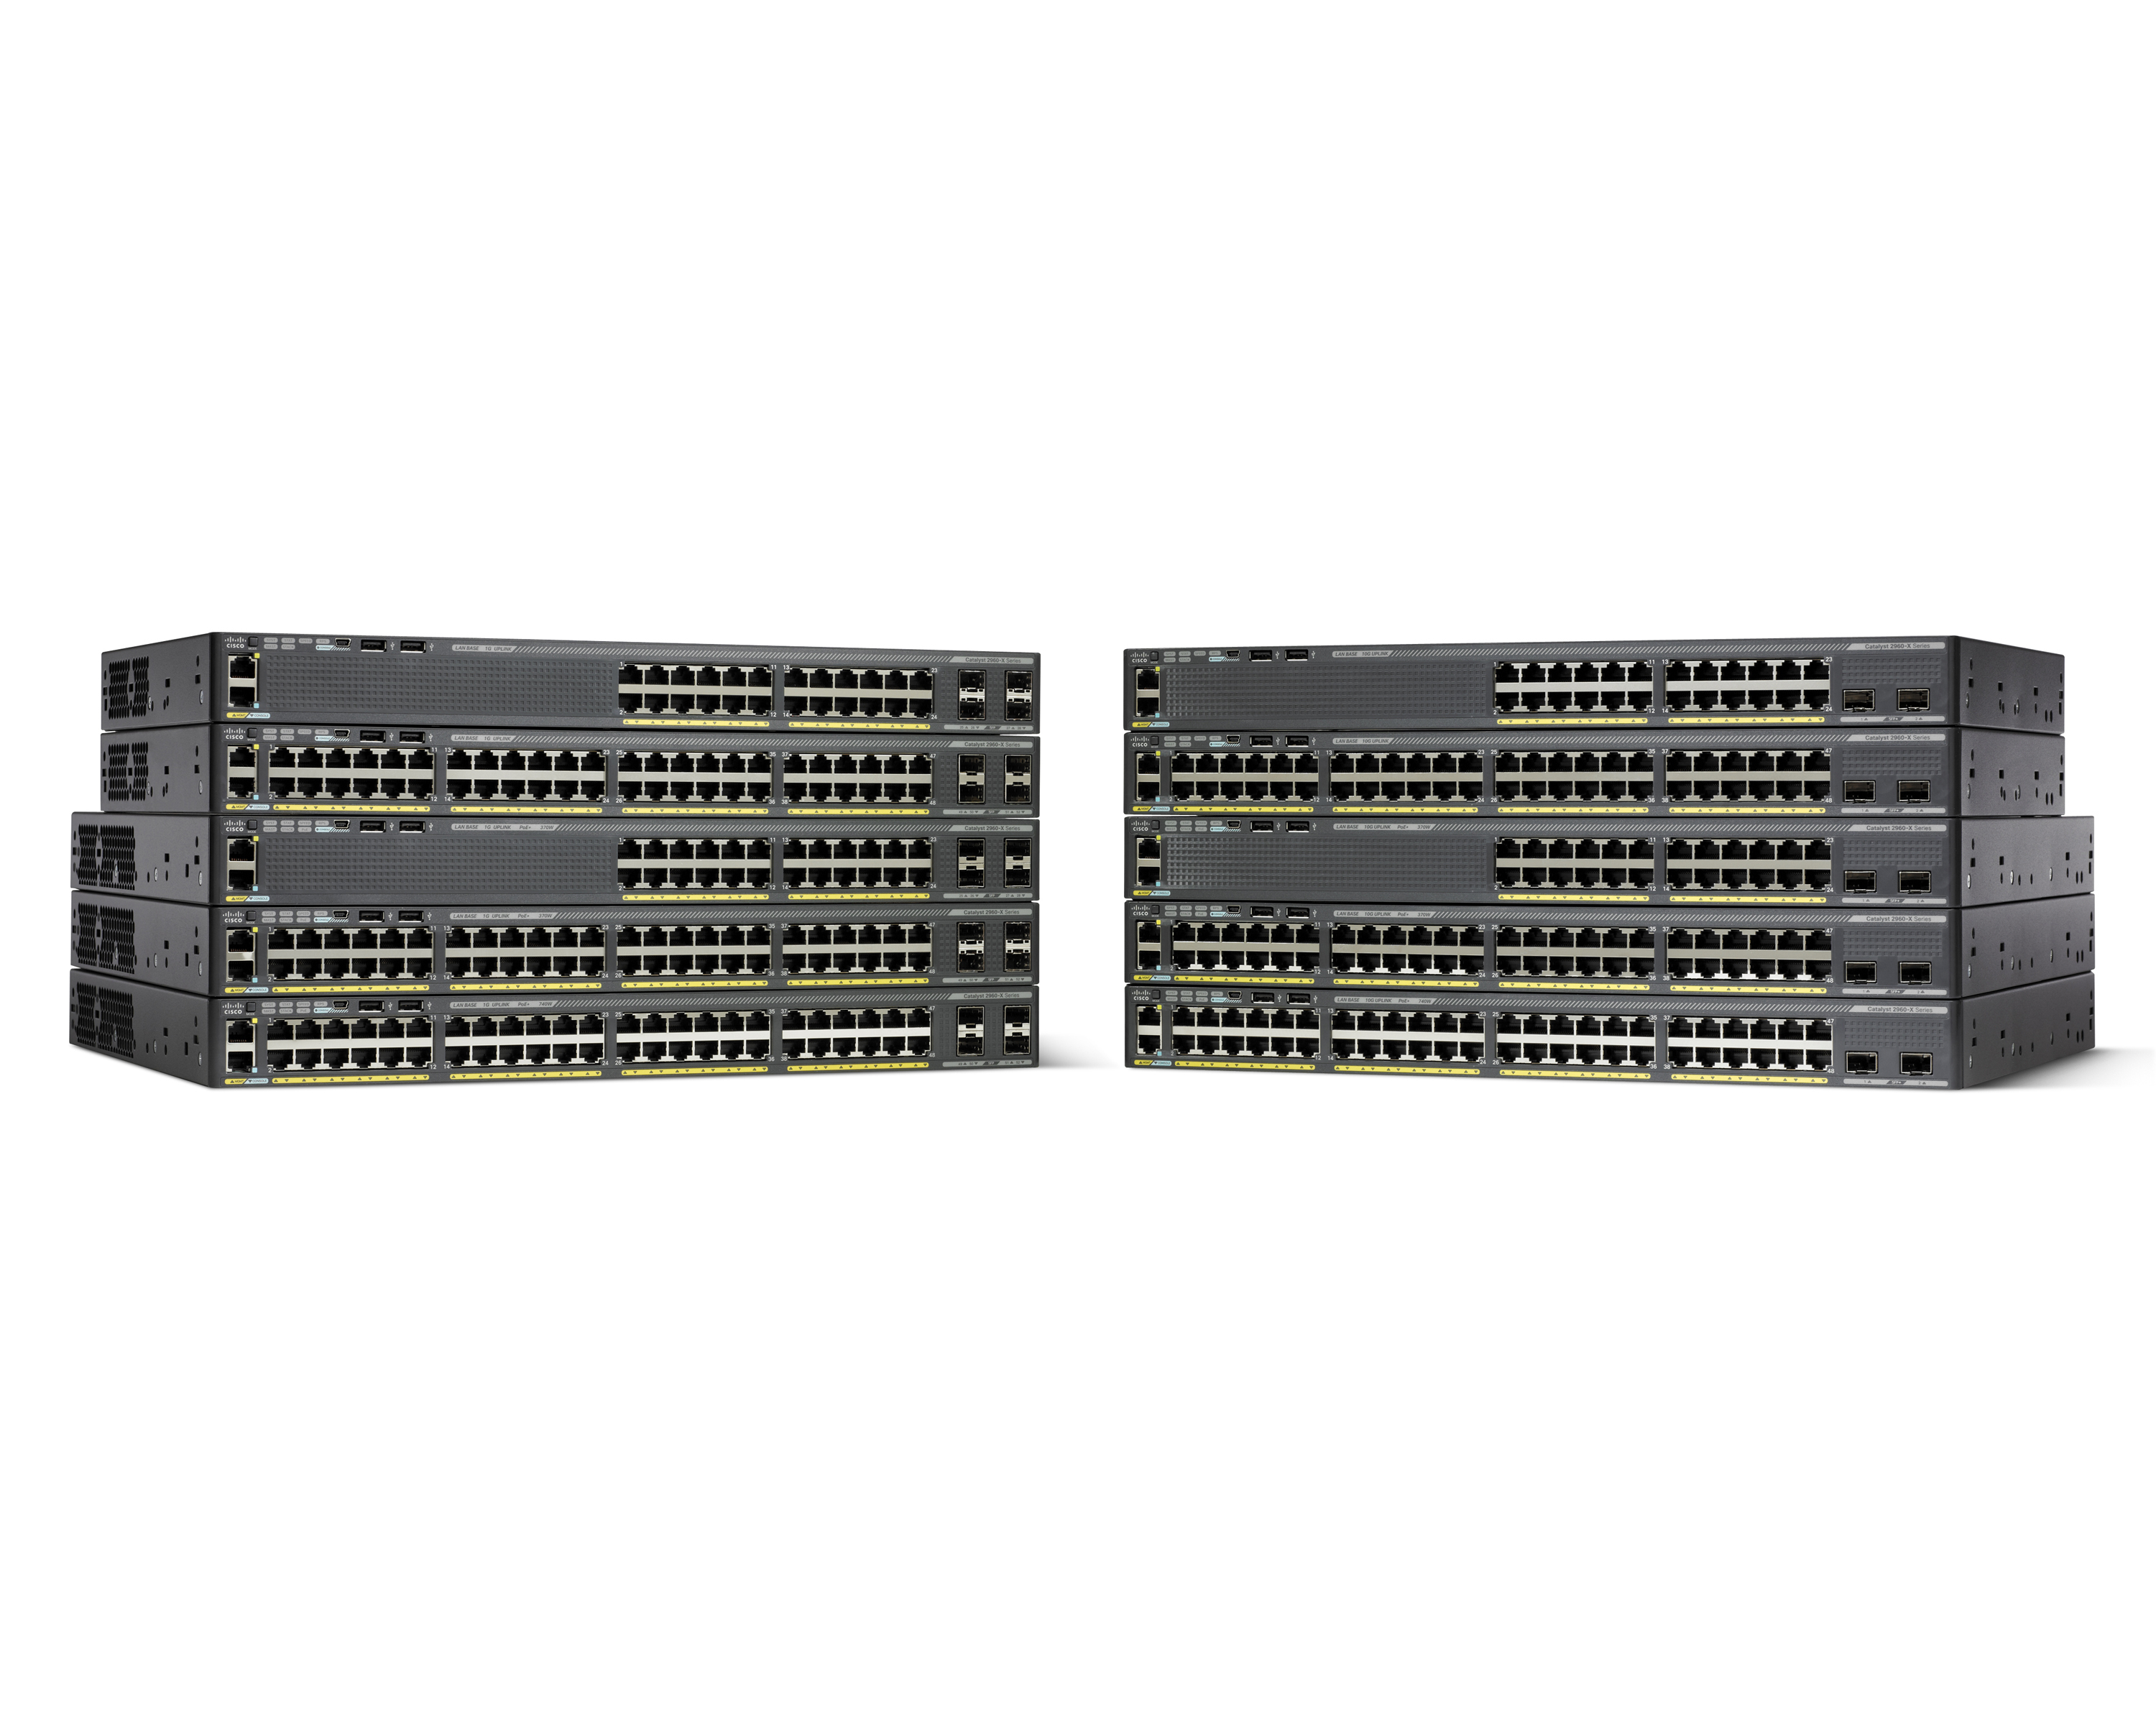 Cisco Catalyst 2960XR-24PS-I Switch ( WS-C2960XR-24PS-I)